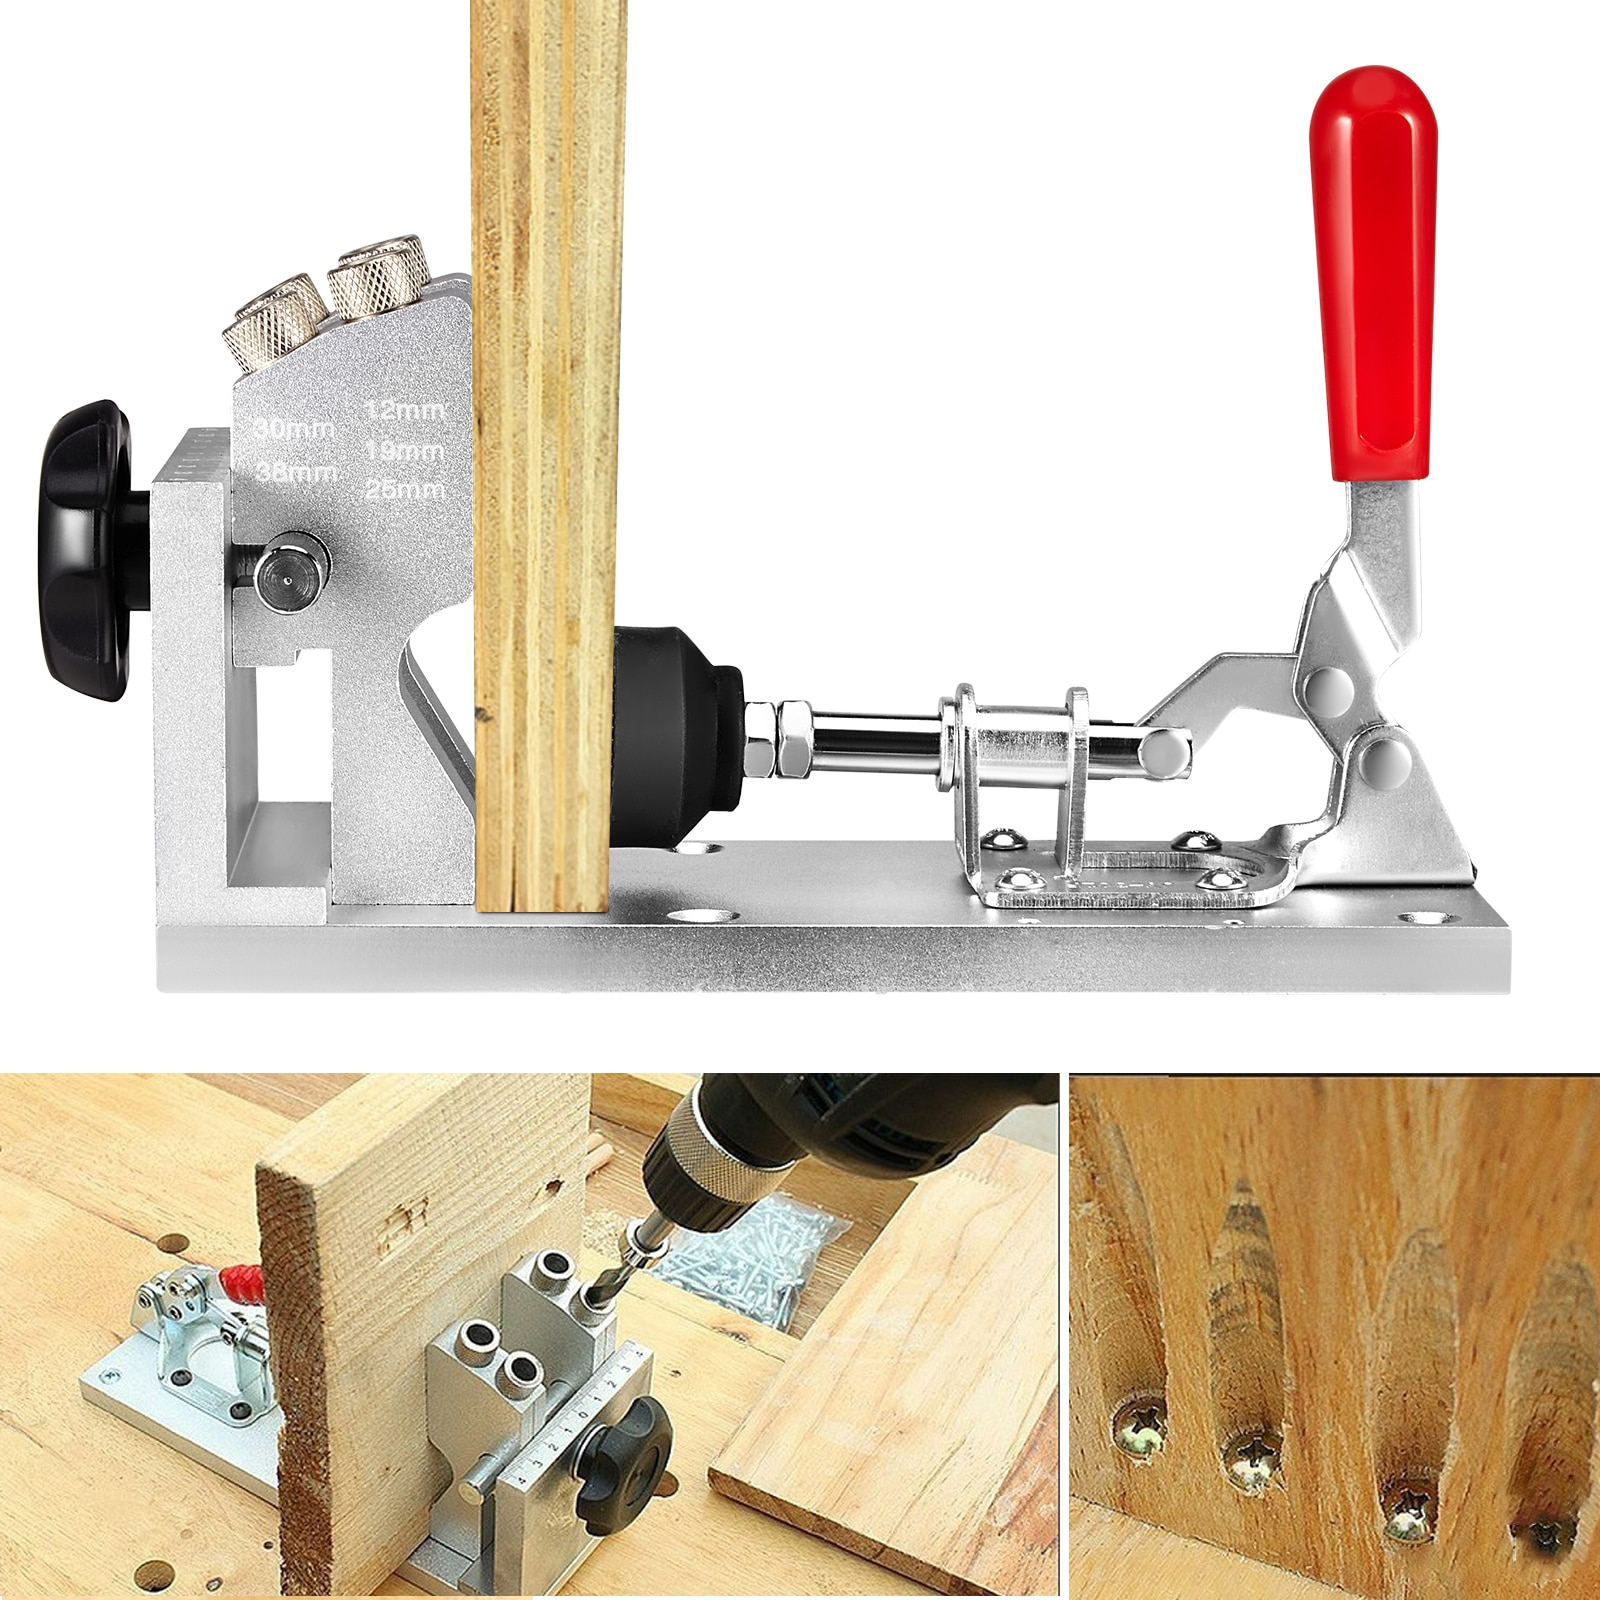 Pocket Hole Jig Kit Woodworking Fixture System Adjustable And Easy-to-use Woodworking Tools Punch Locator Drill Locator